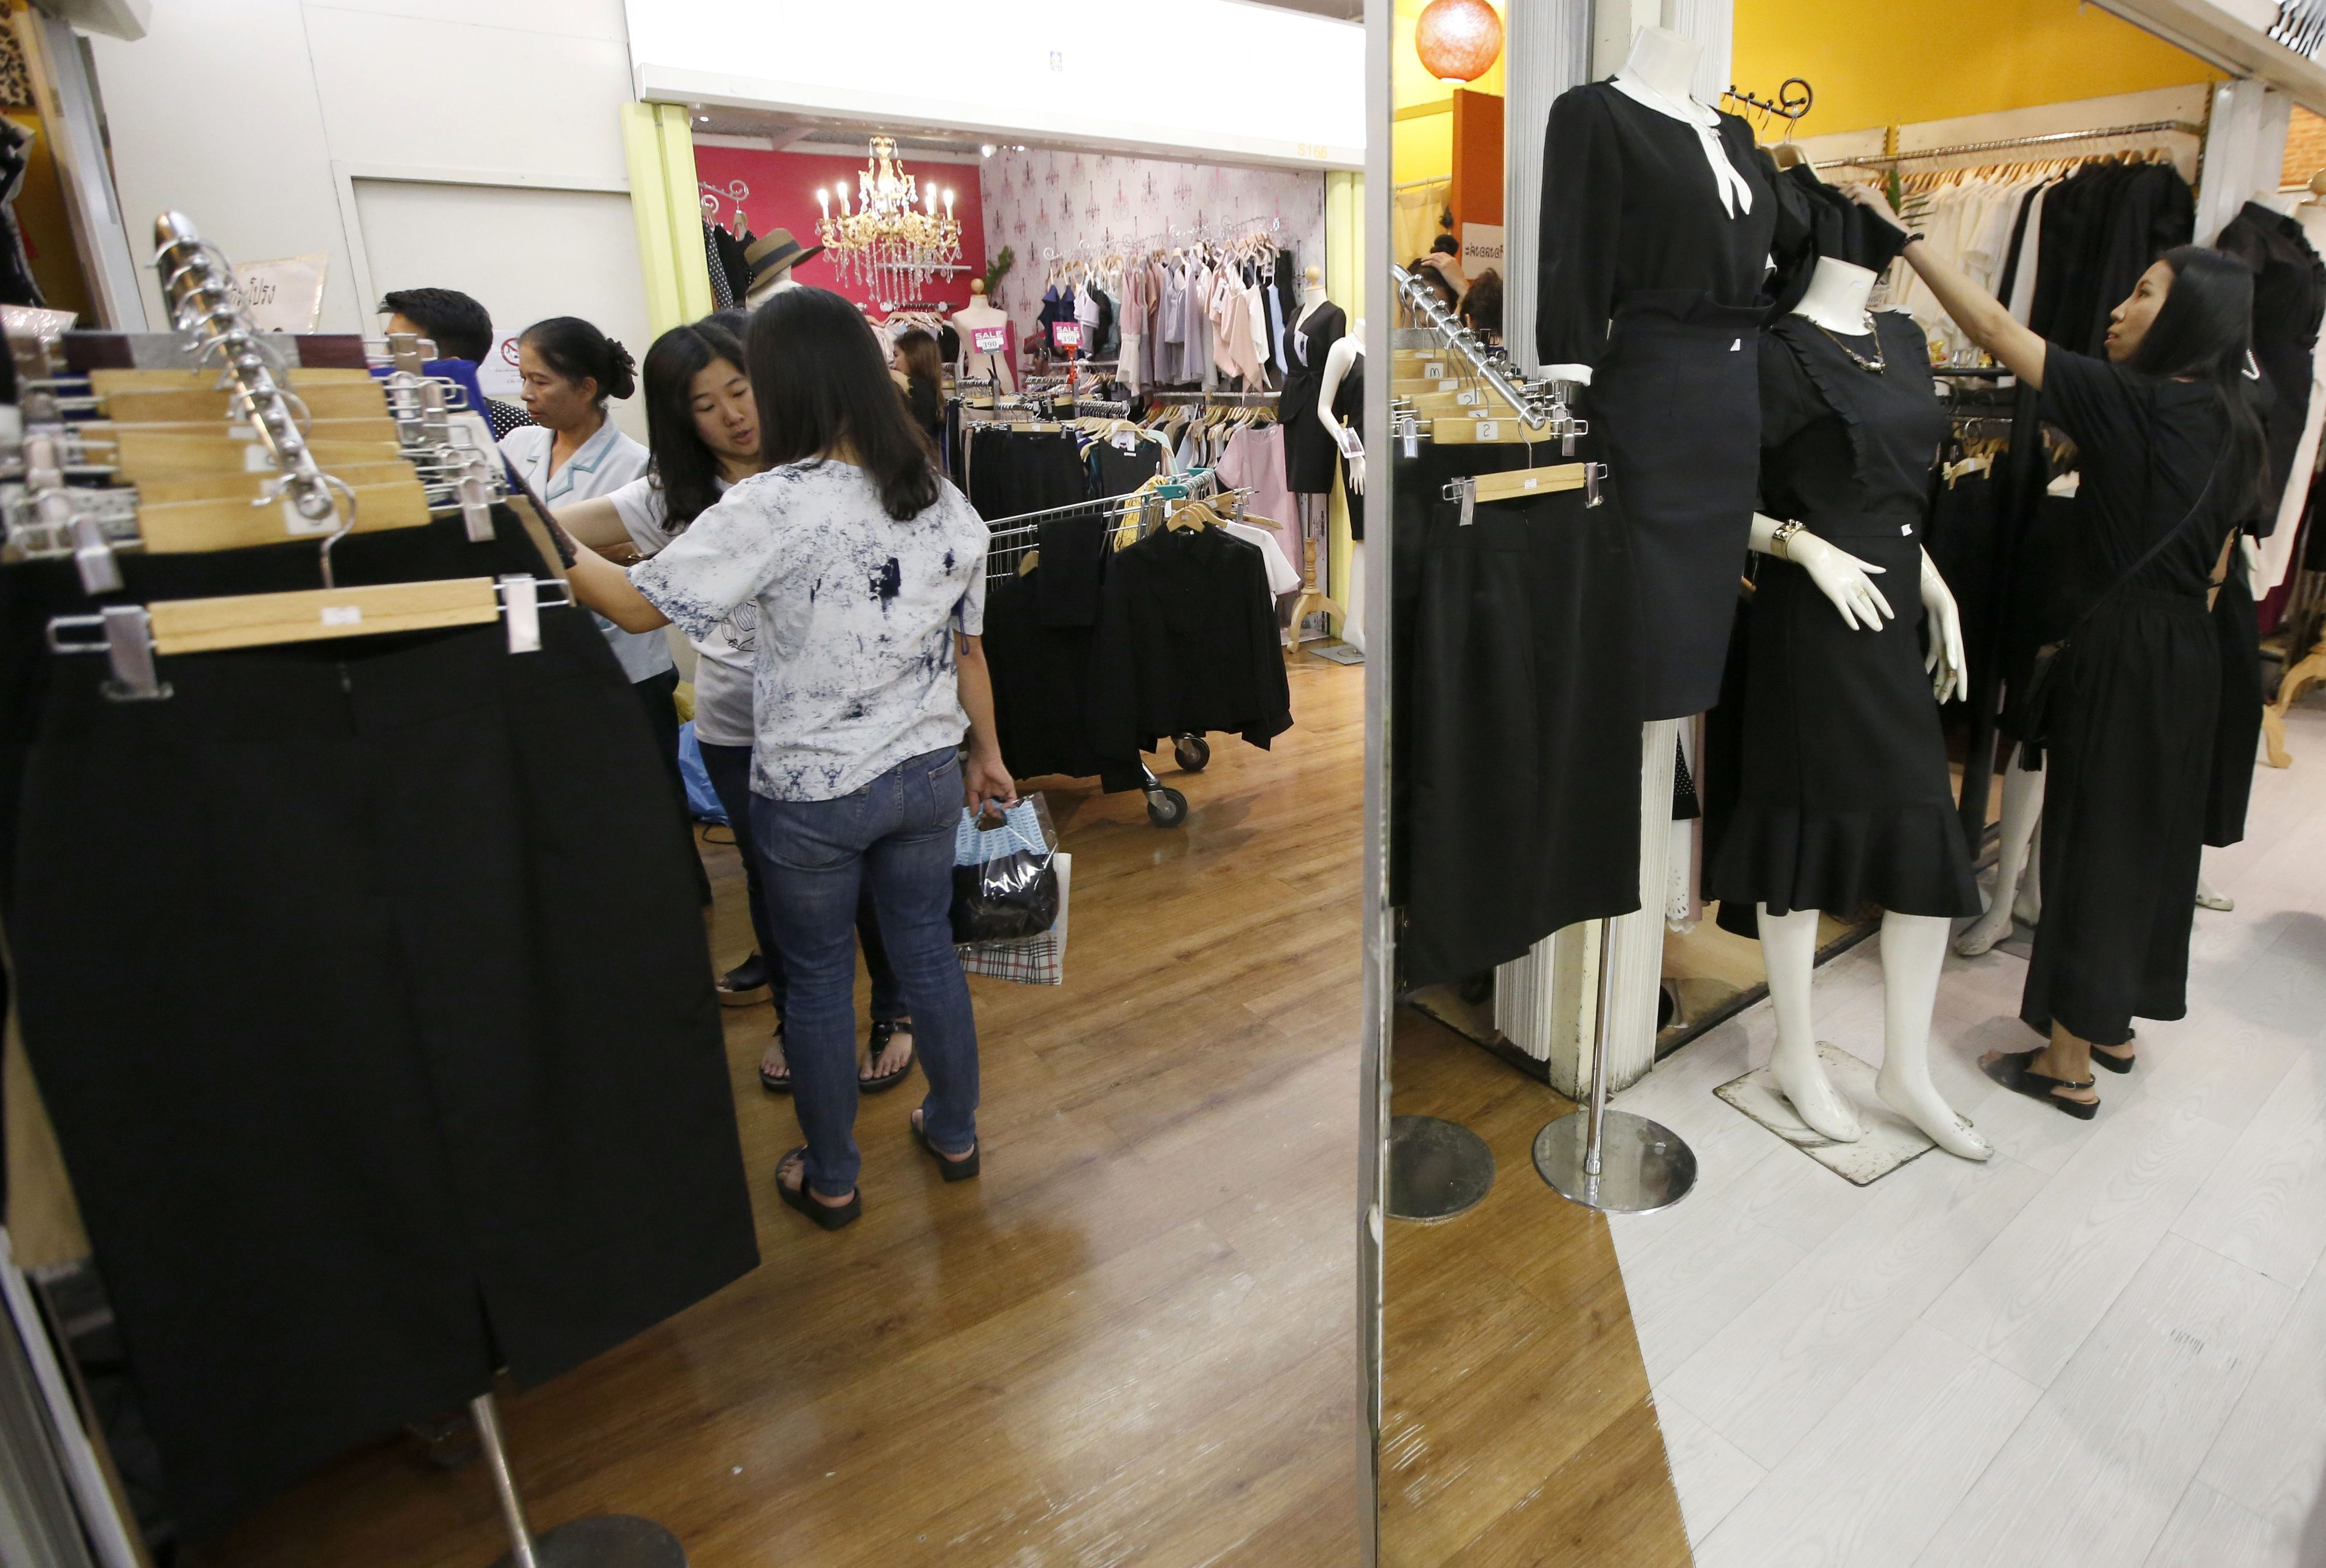 Thai customers are reflected in a mirror while buying black clothing in honor of the late leader.